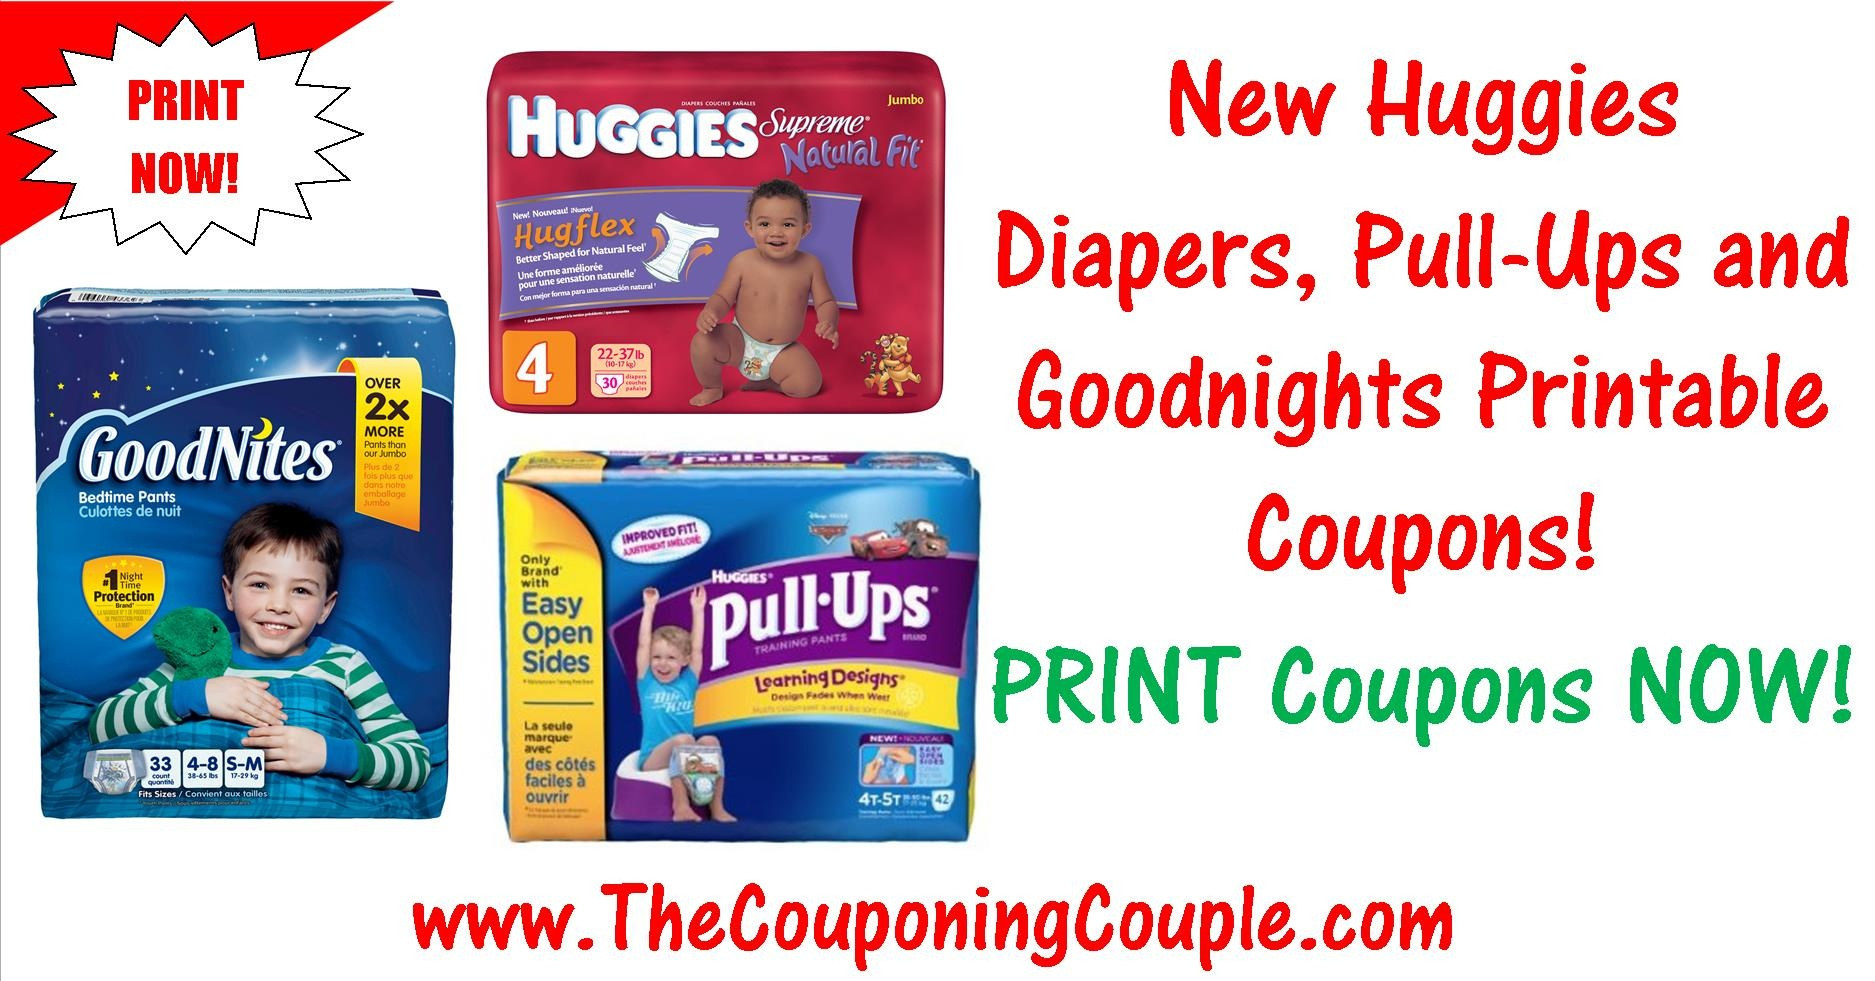 New Huggies Diapers, Pull-Ups, And Goodnites Printable Coupons! - Free Printable Coupons For Huggies Pull Ups